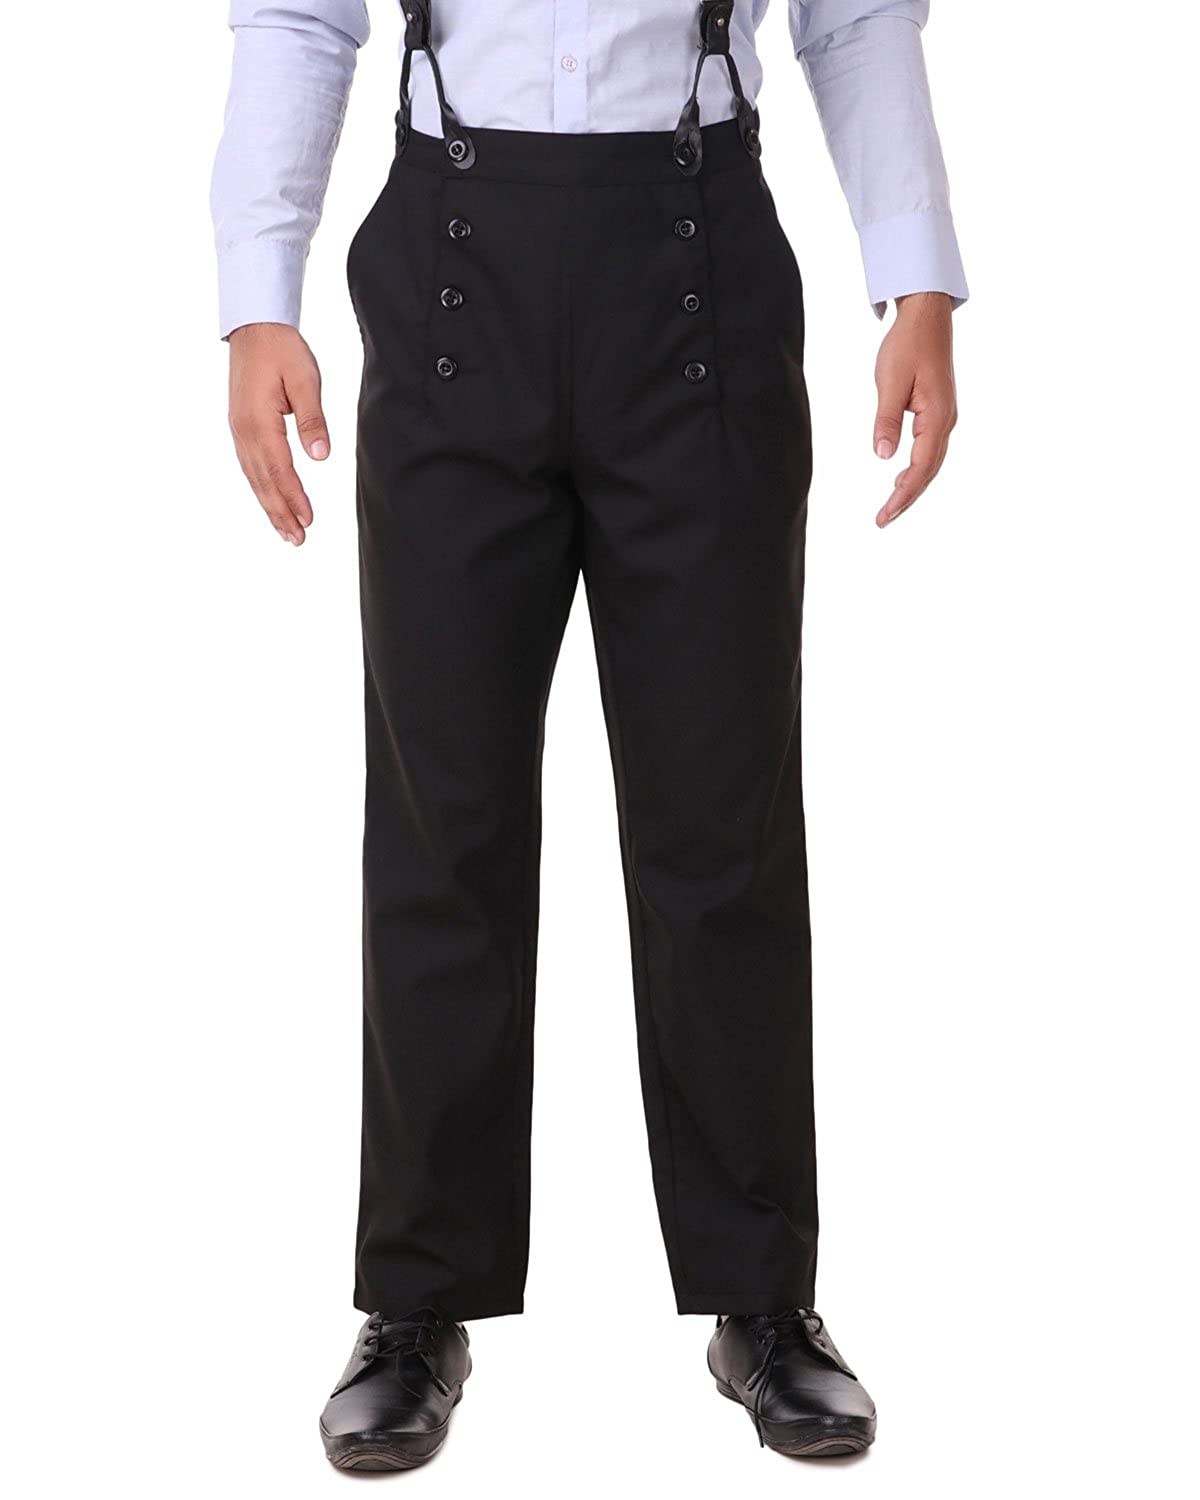 Men's Vintage Pants, Trousers, Jeans, Overalls ThePirateDressing Steampunk Victorian Cosplay Costume Architect Mens Pants Trousers $45.33 AT vintagedancer.com